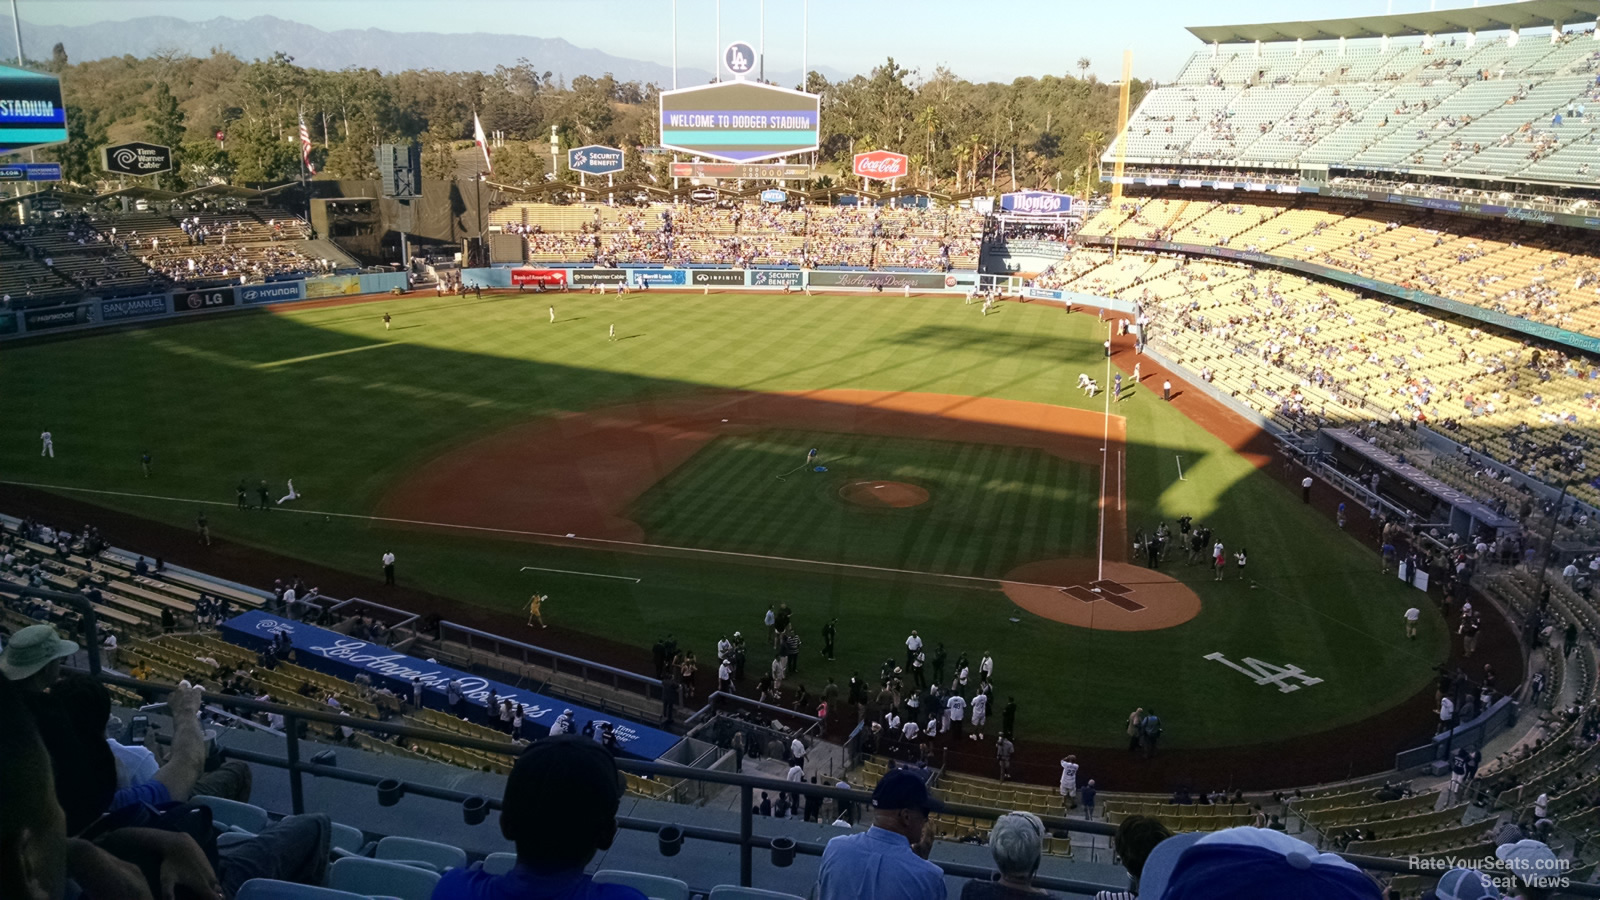 Seats in the sun down the first base line at Dodger Stadium